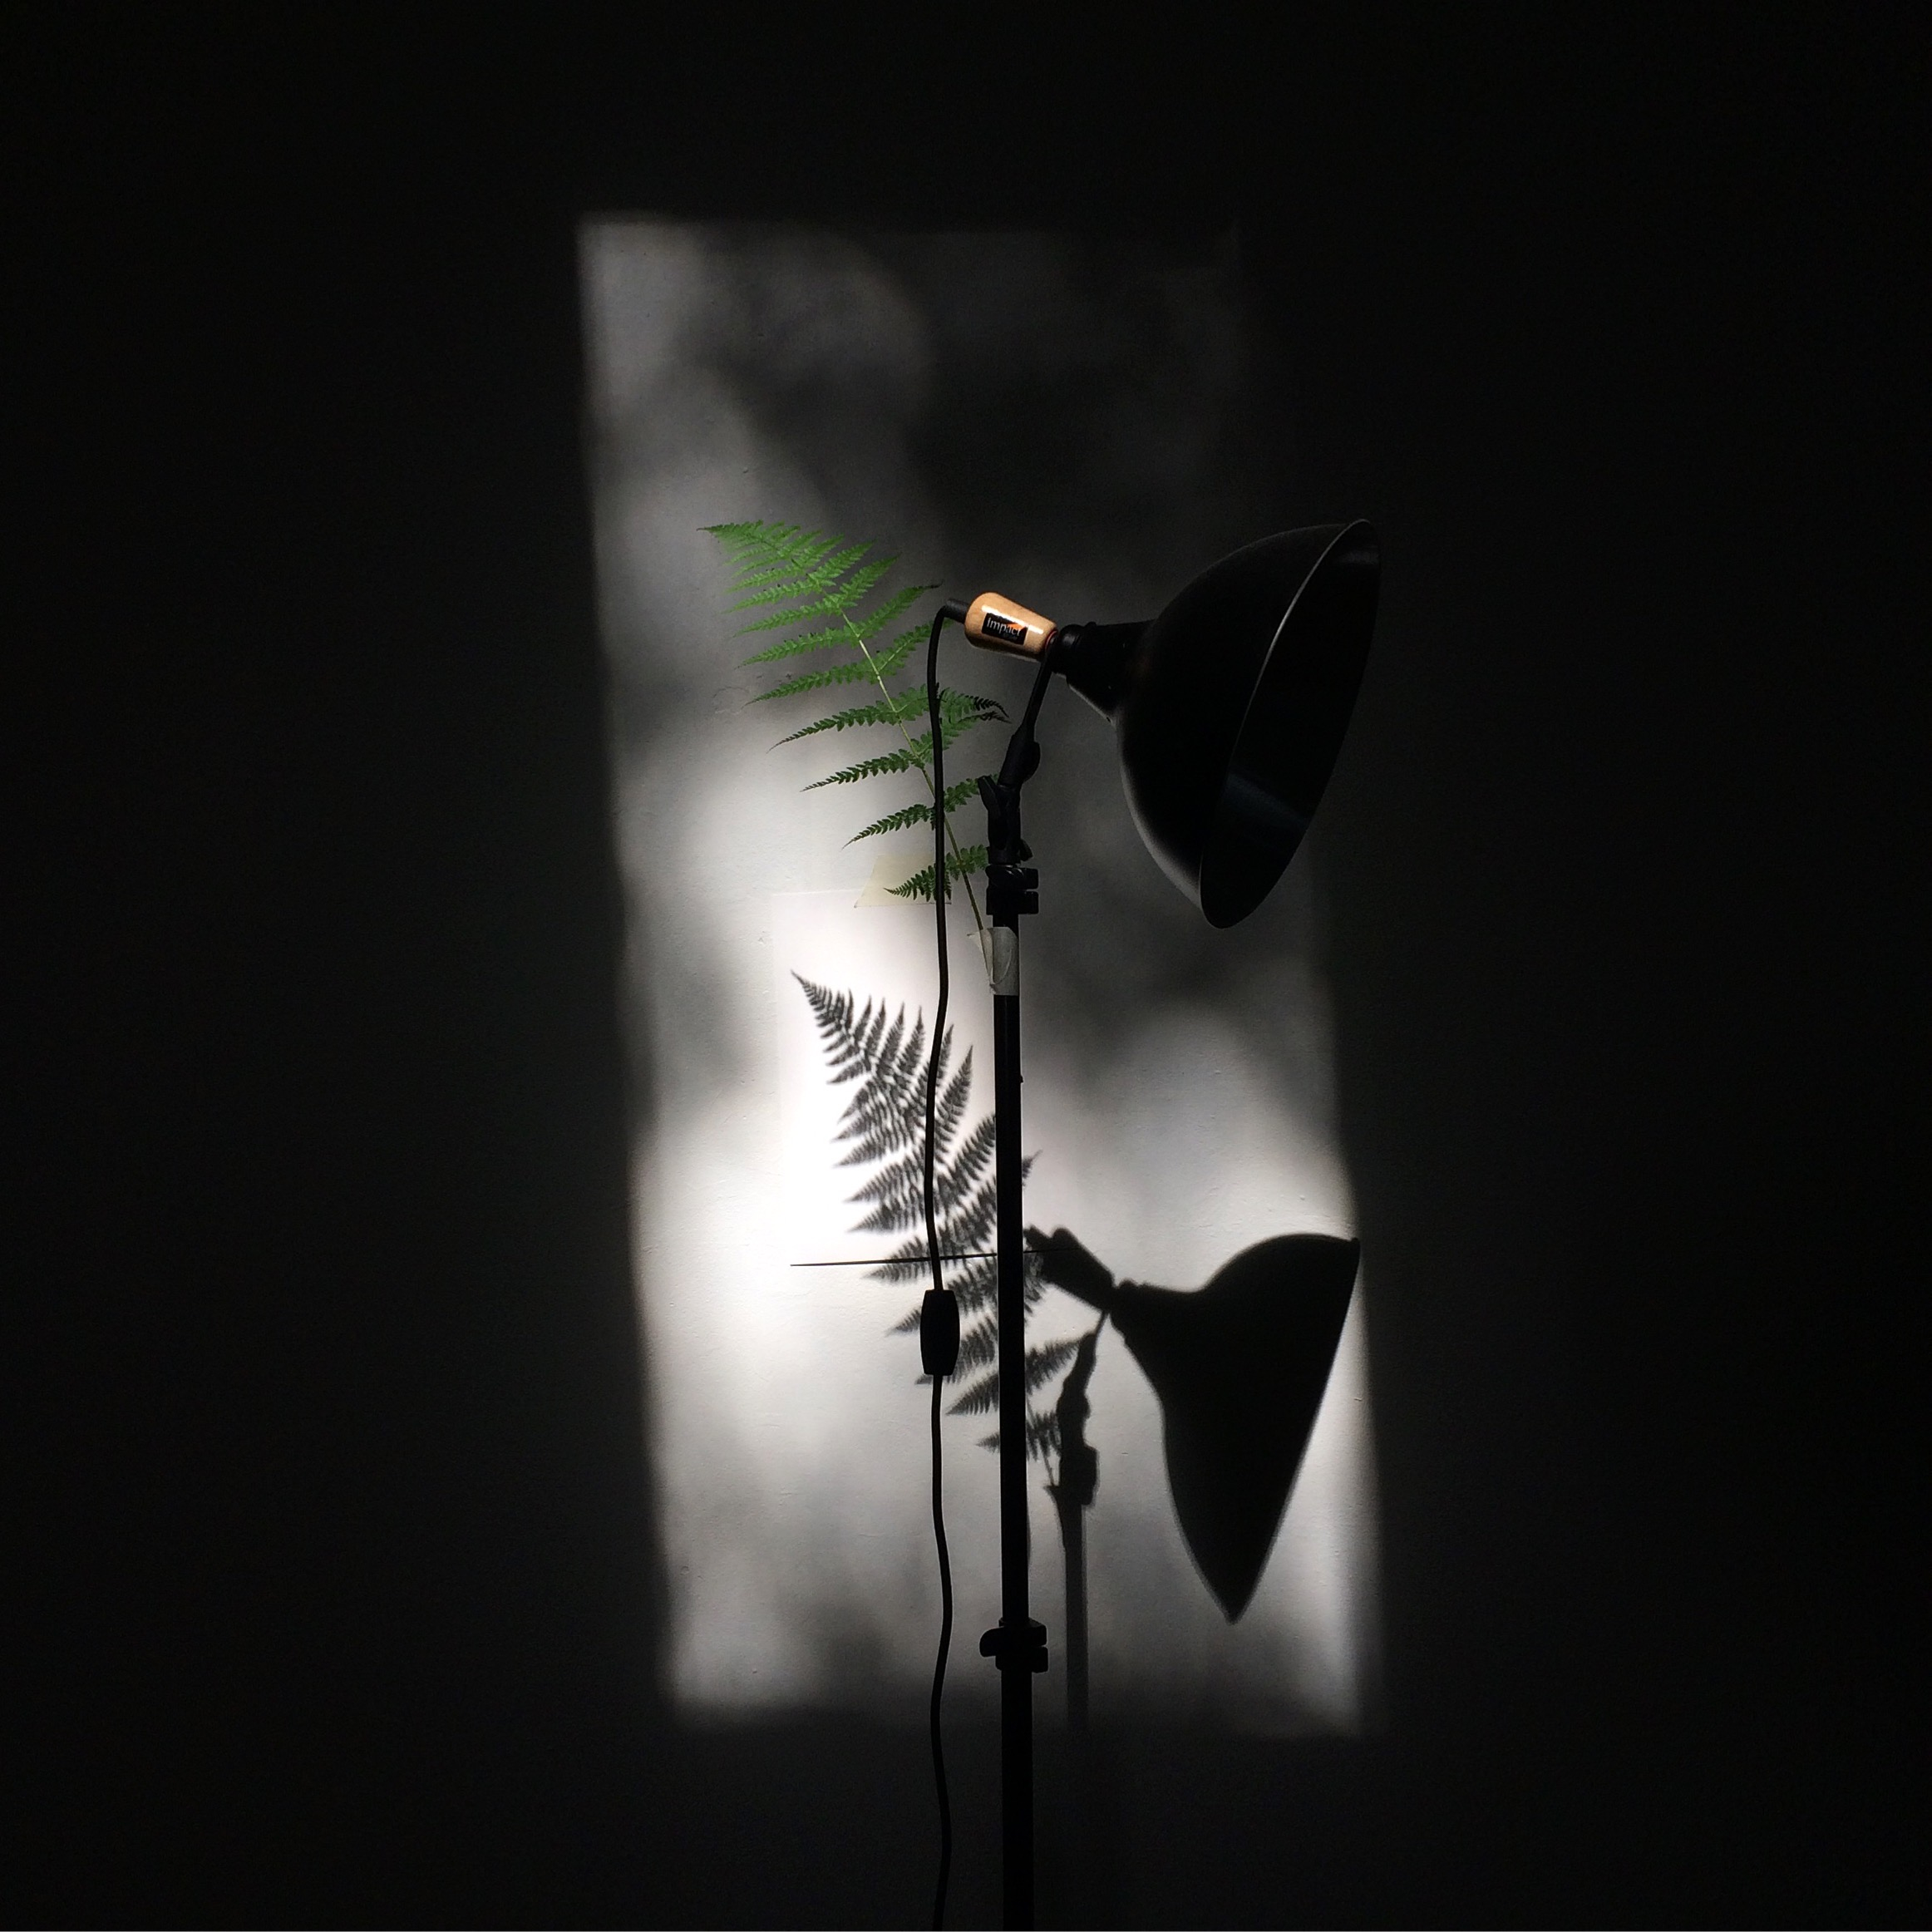 - Fern / Sun Dial is an ongoing project wherein a frond's shadow in painted repeatedly, on the hour, as the sun moves through a window.